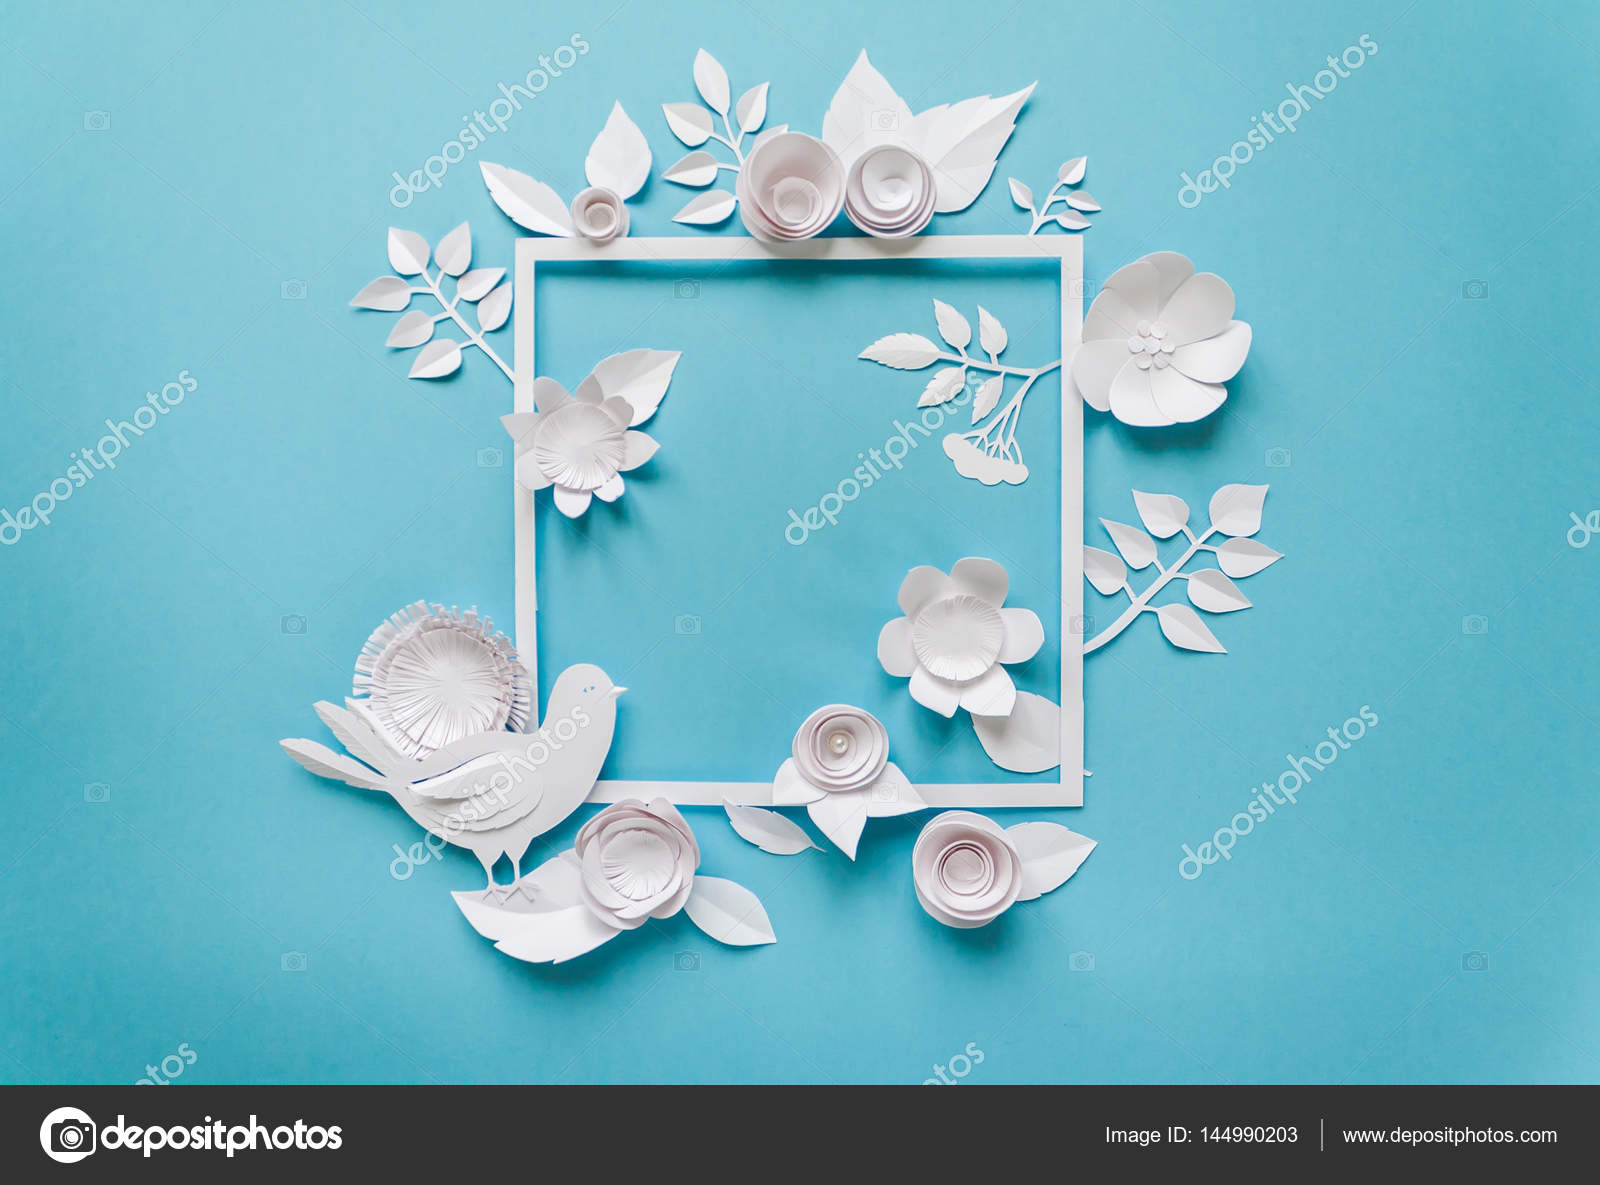 Square frame with white paper flowers flat lay nature concept square frame with white paper flowers flat lay nature concept stock photo mightylinksfo